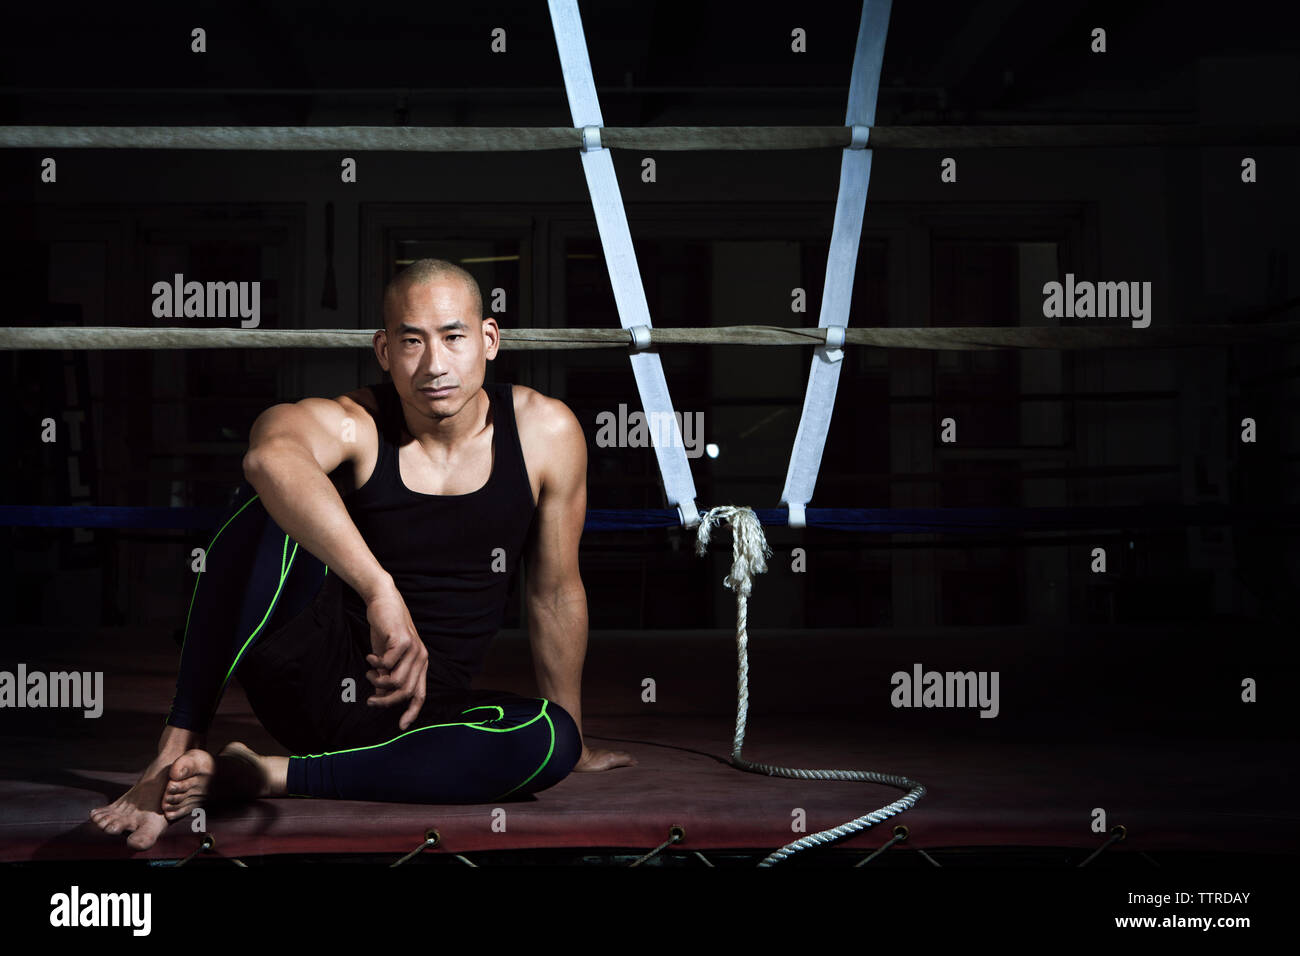 Confident athlete sitting on bench against boxing ring in gym - Stock Image